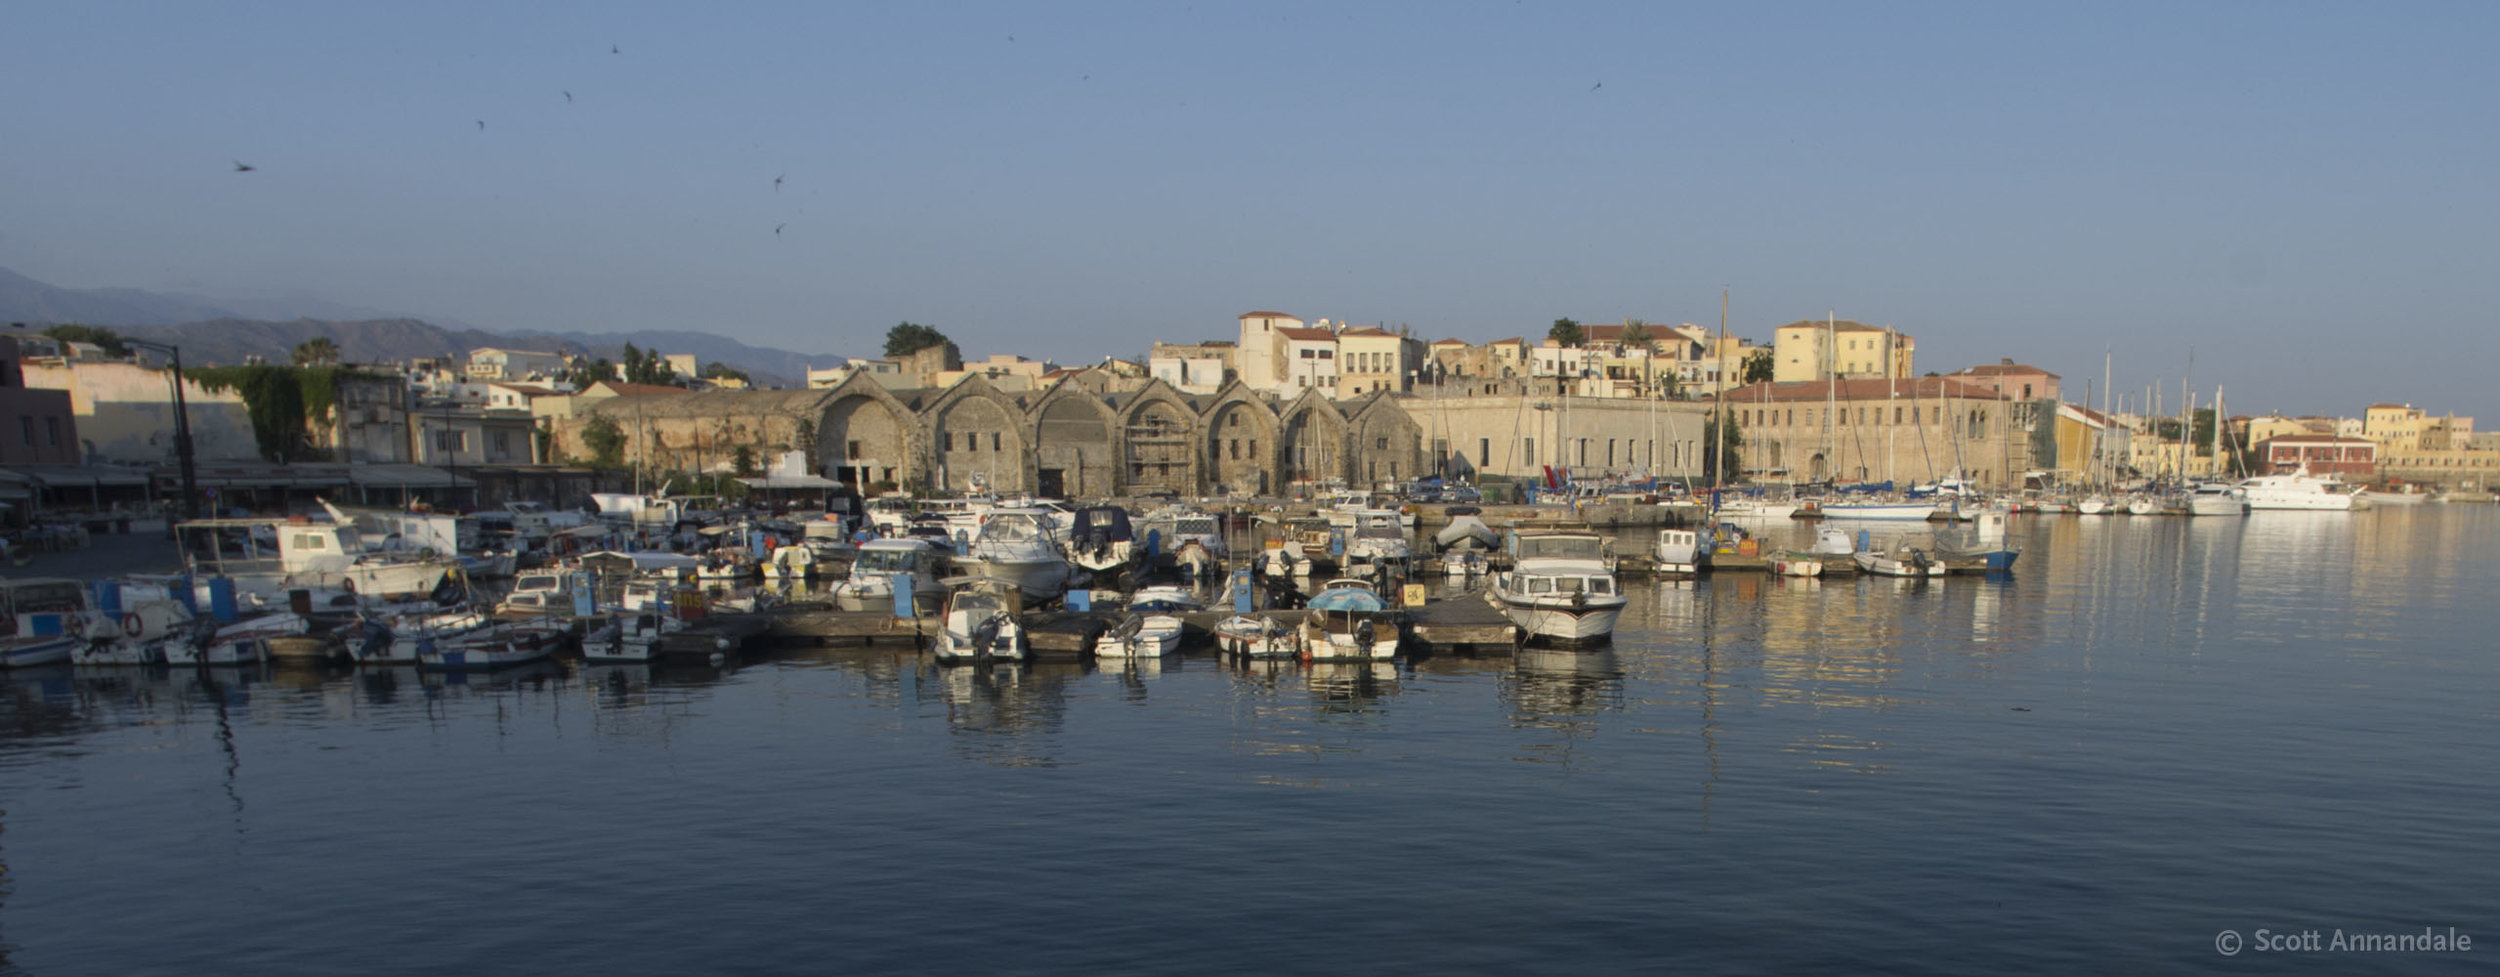 Old Venetian Harbour, Chania, Crete